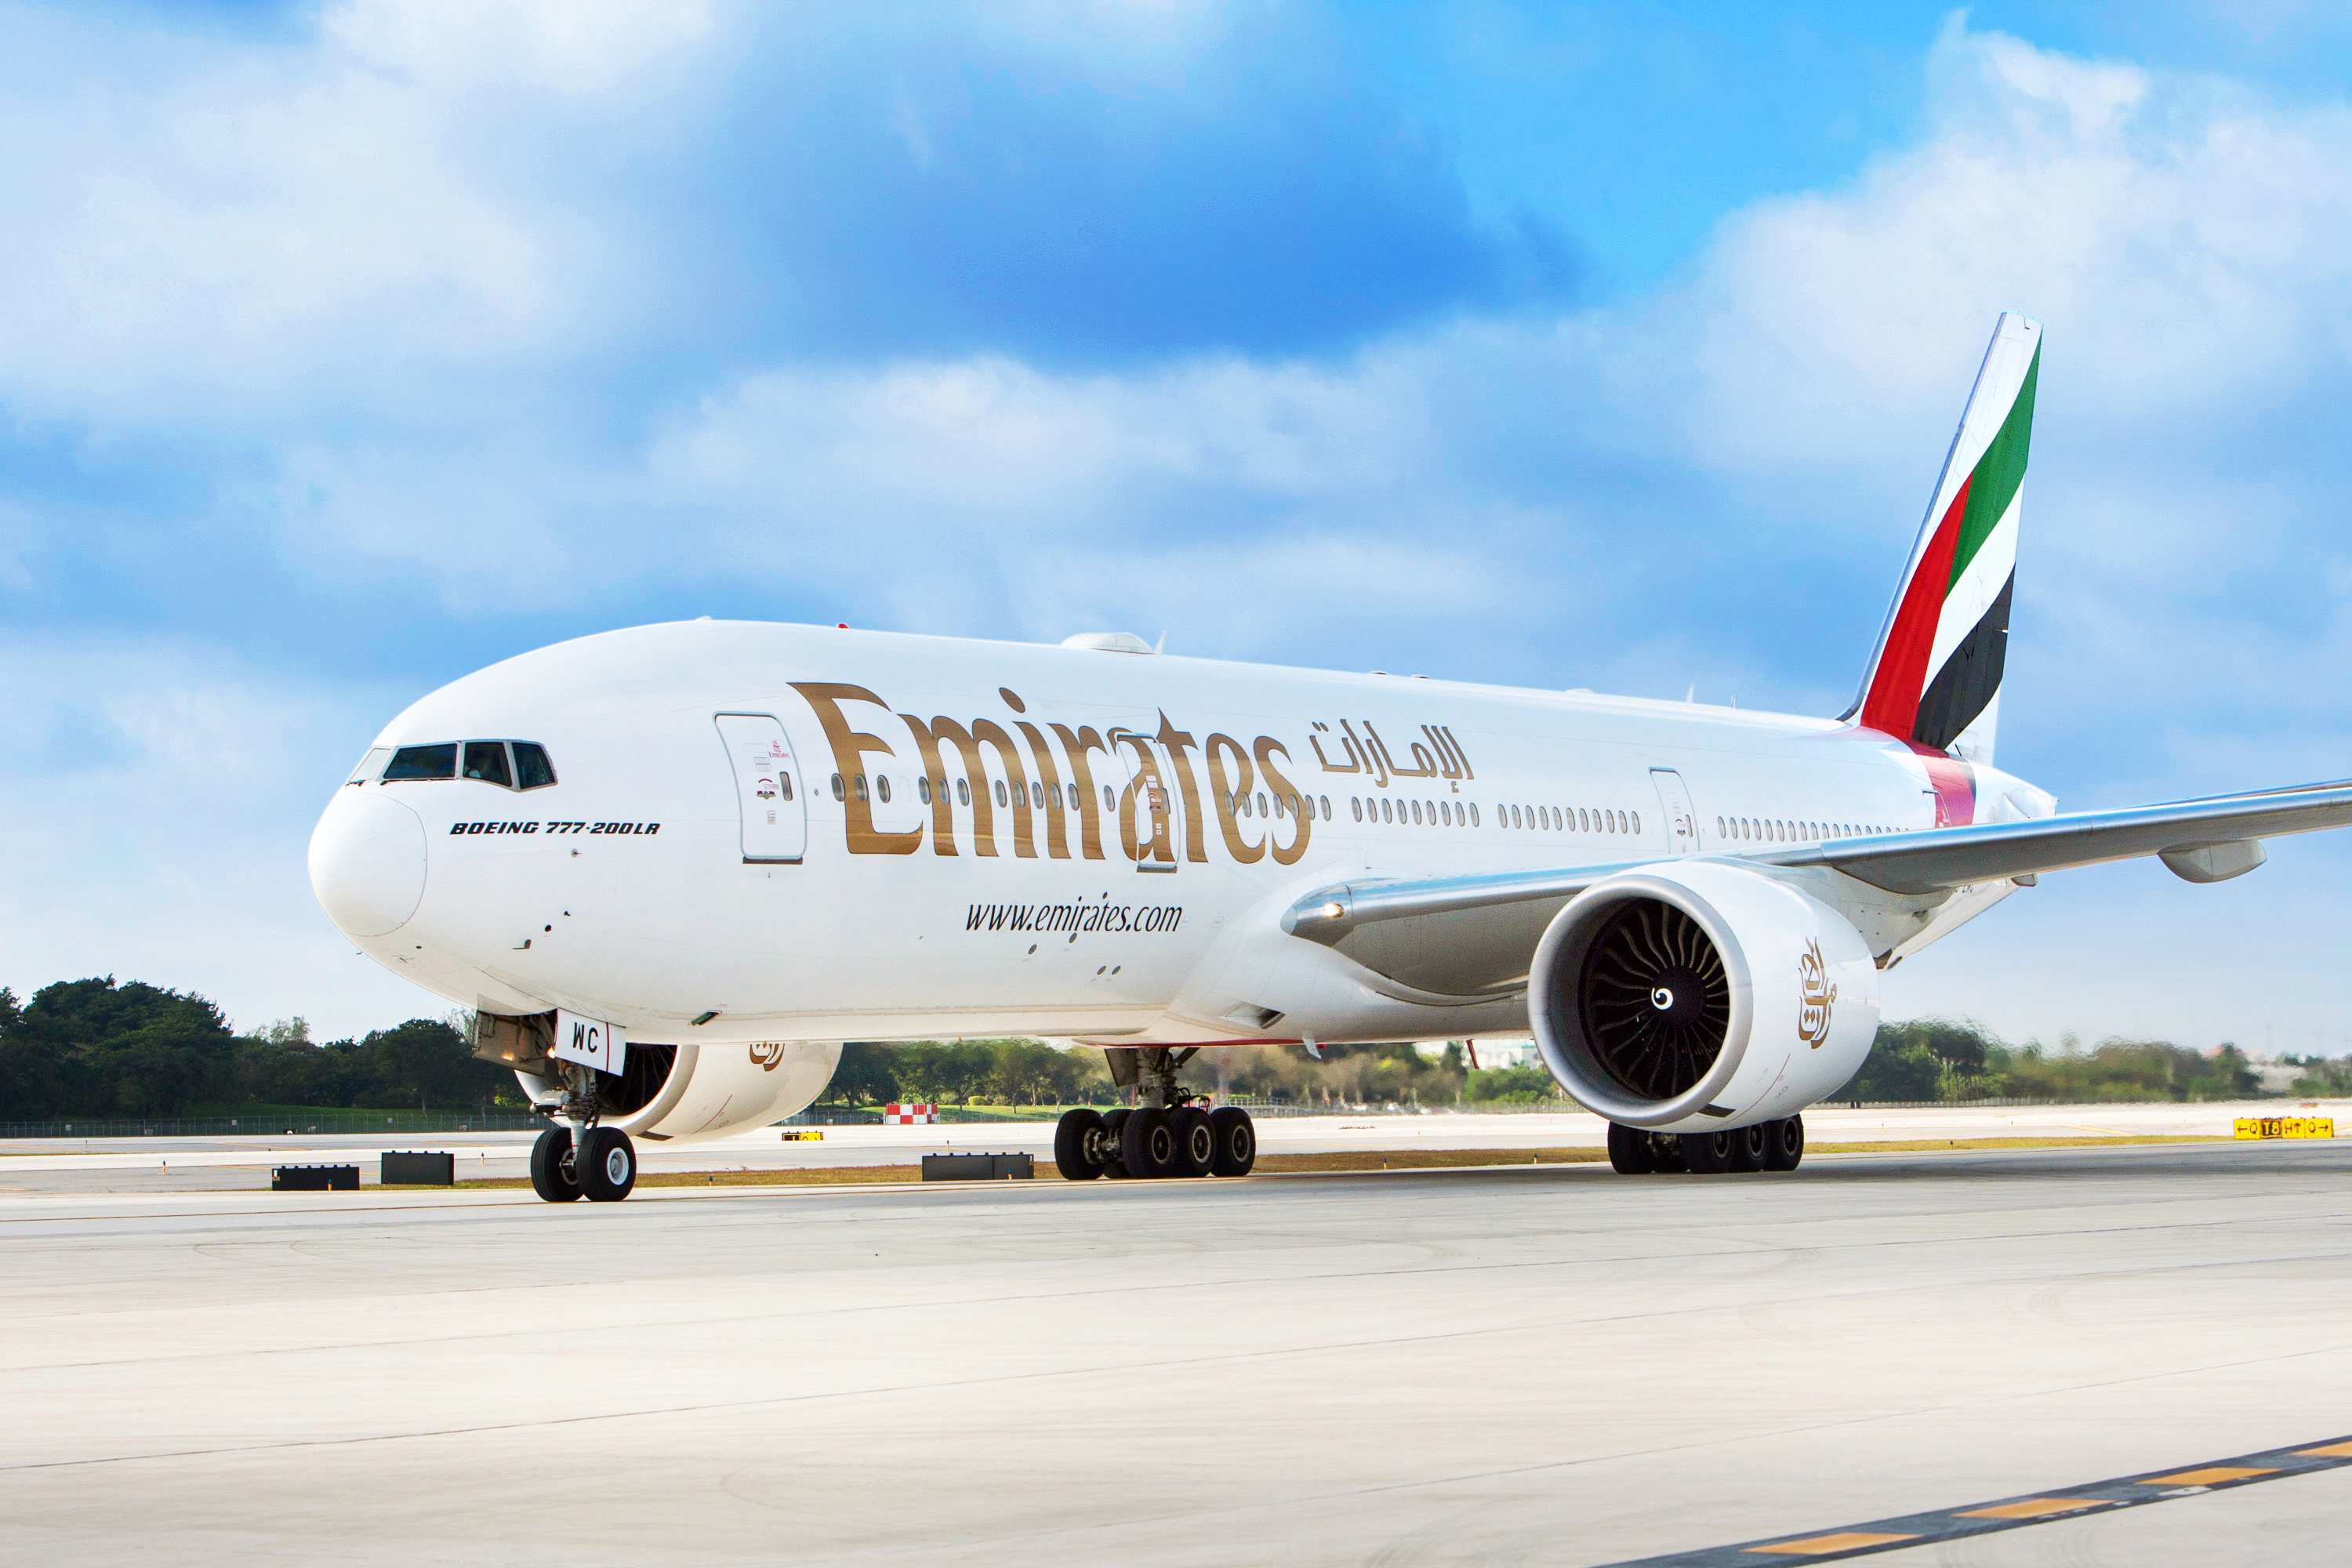 Emirates withdraws plans to operate Dubai-Mexico flights